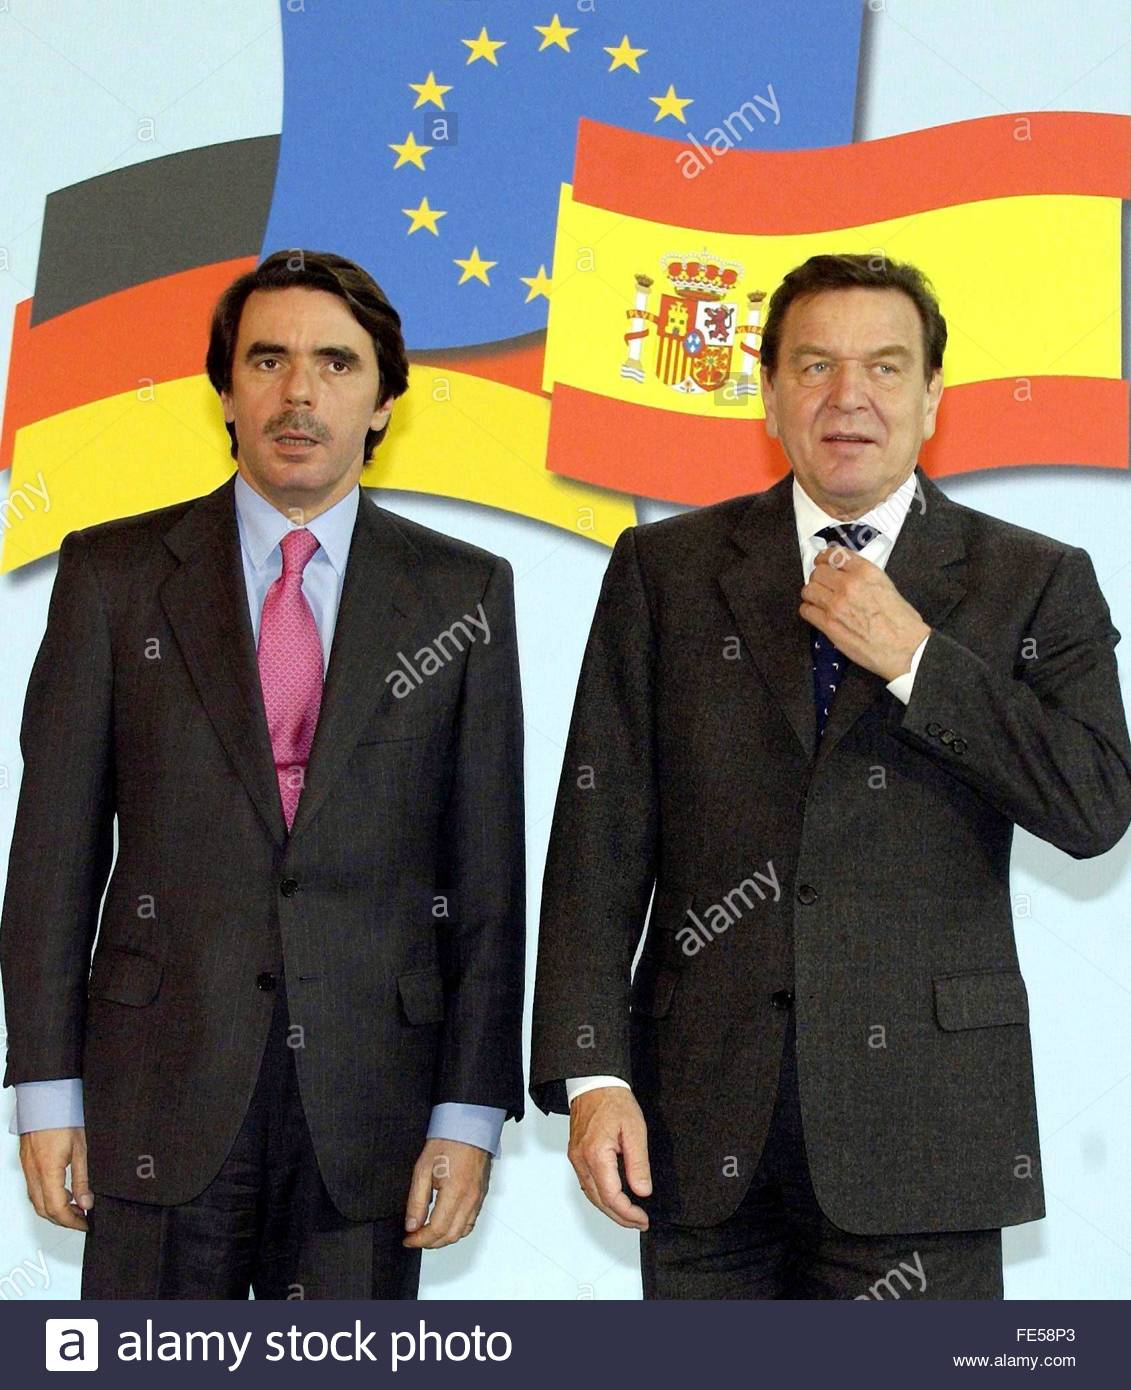 ¿Cuánto mide José María Aznar? German-chancellor-gerhard-schroeder-r-adjusts-his-tie-as-spanish-premier-FE58P3